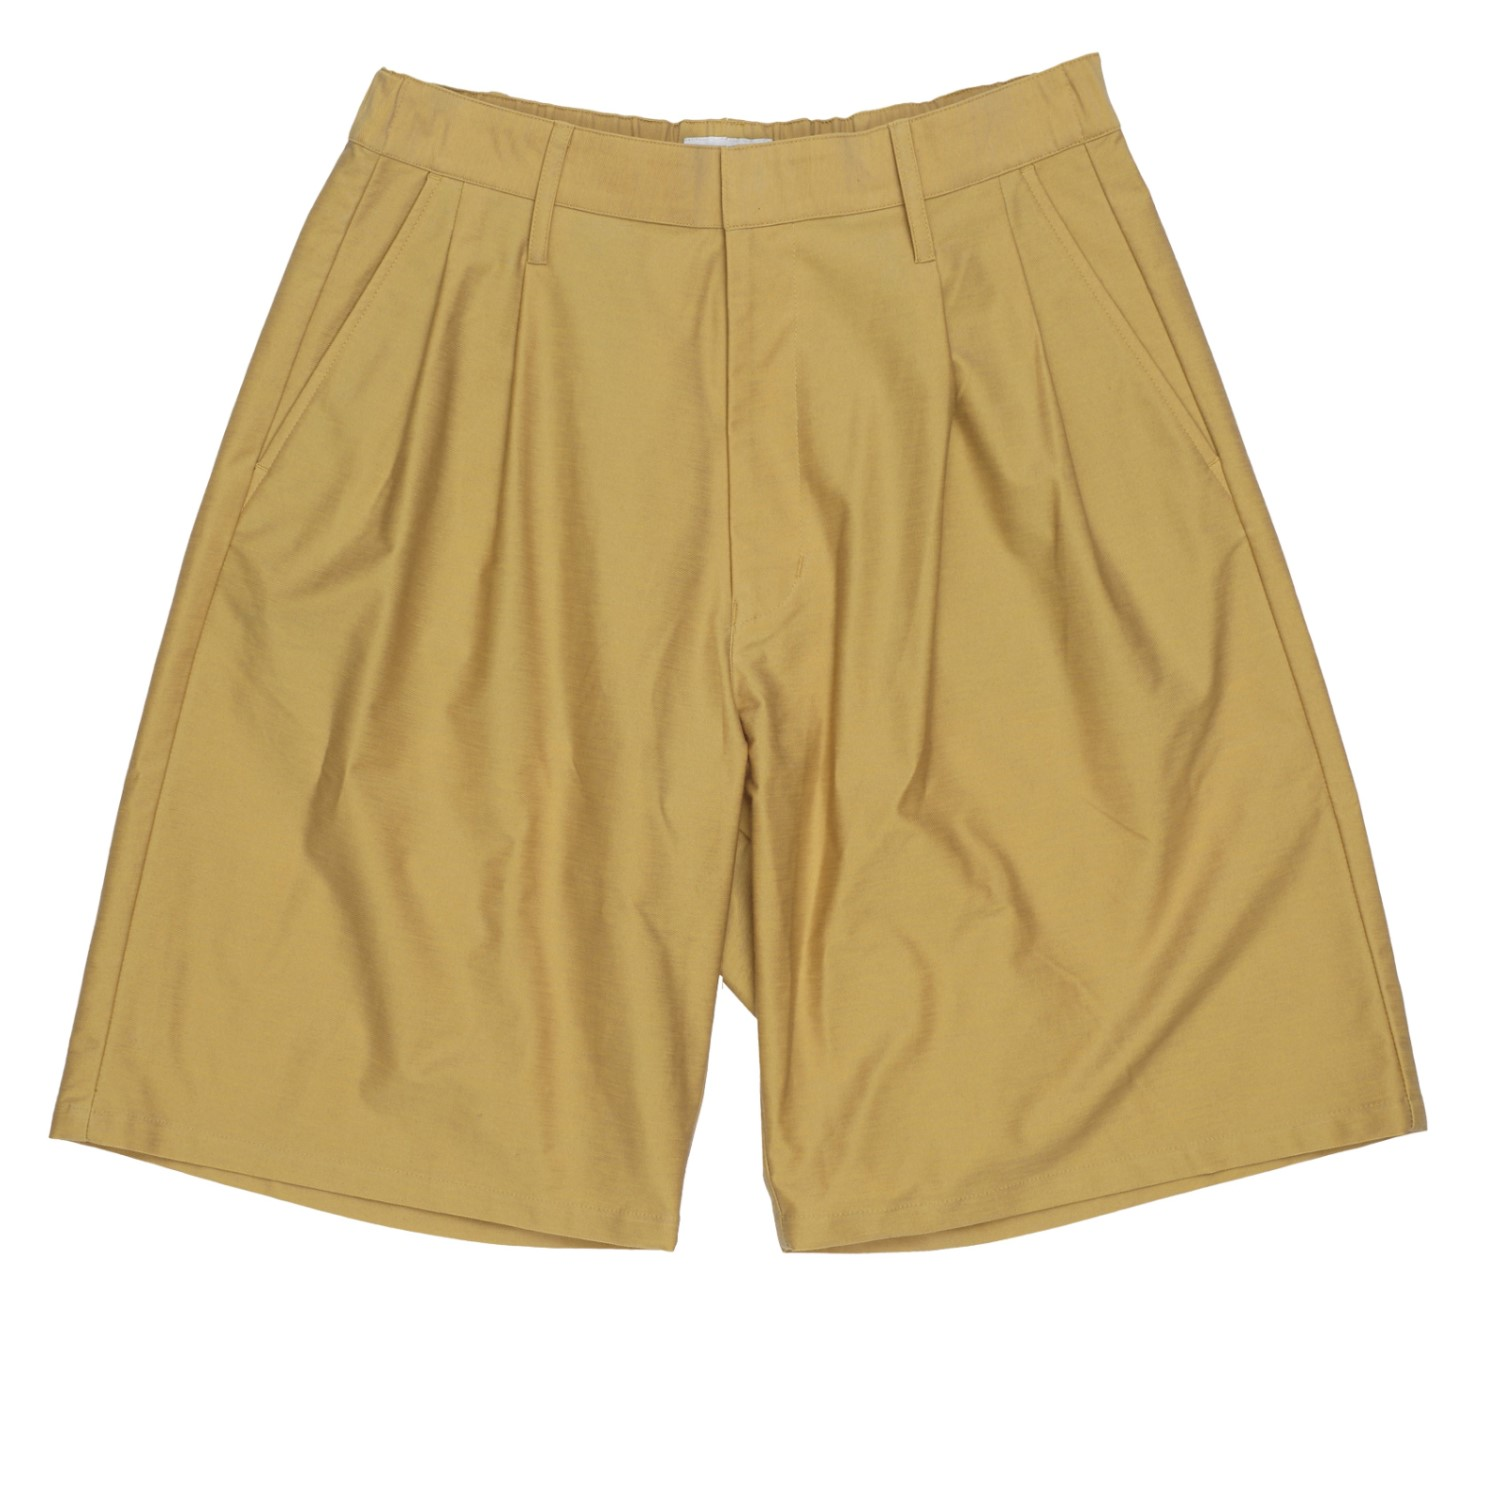 Super High Gauge Solaro Twill Tac Straight Shorts